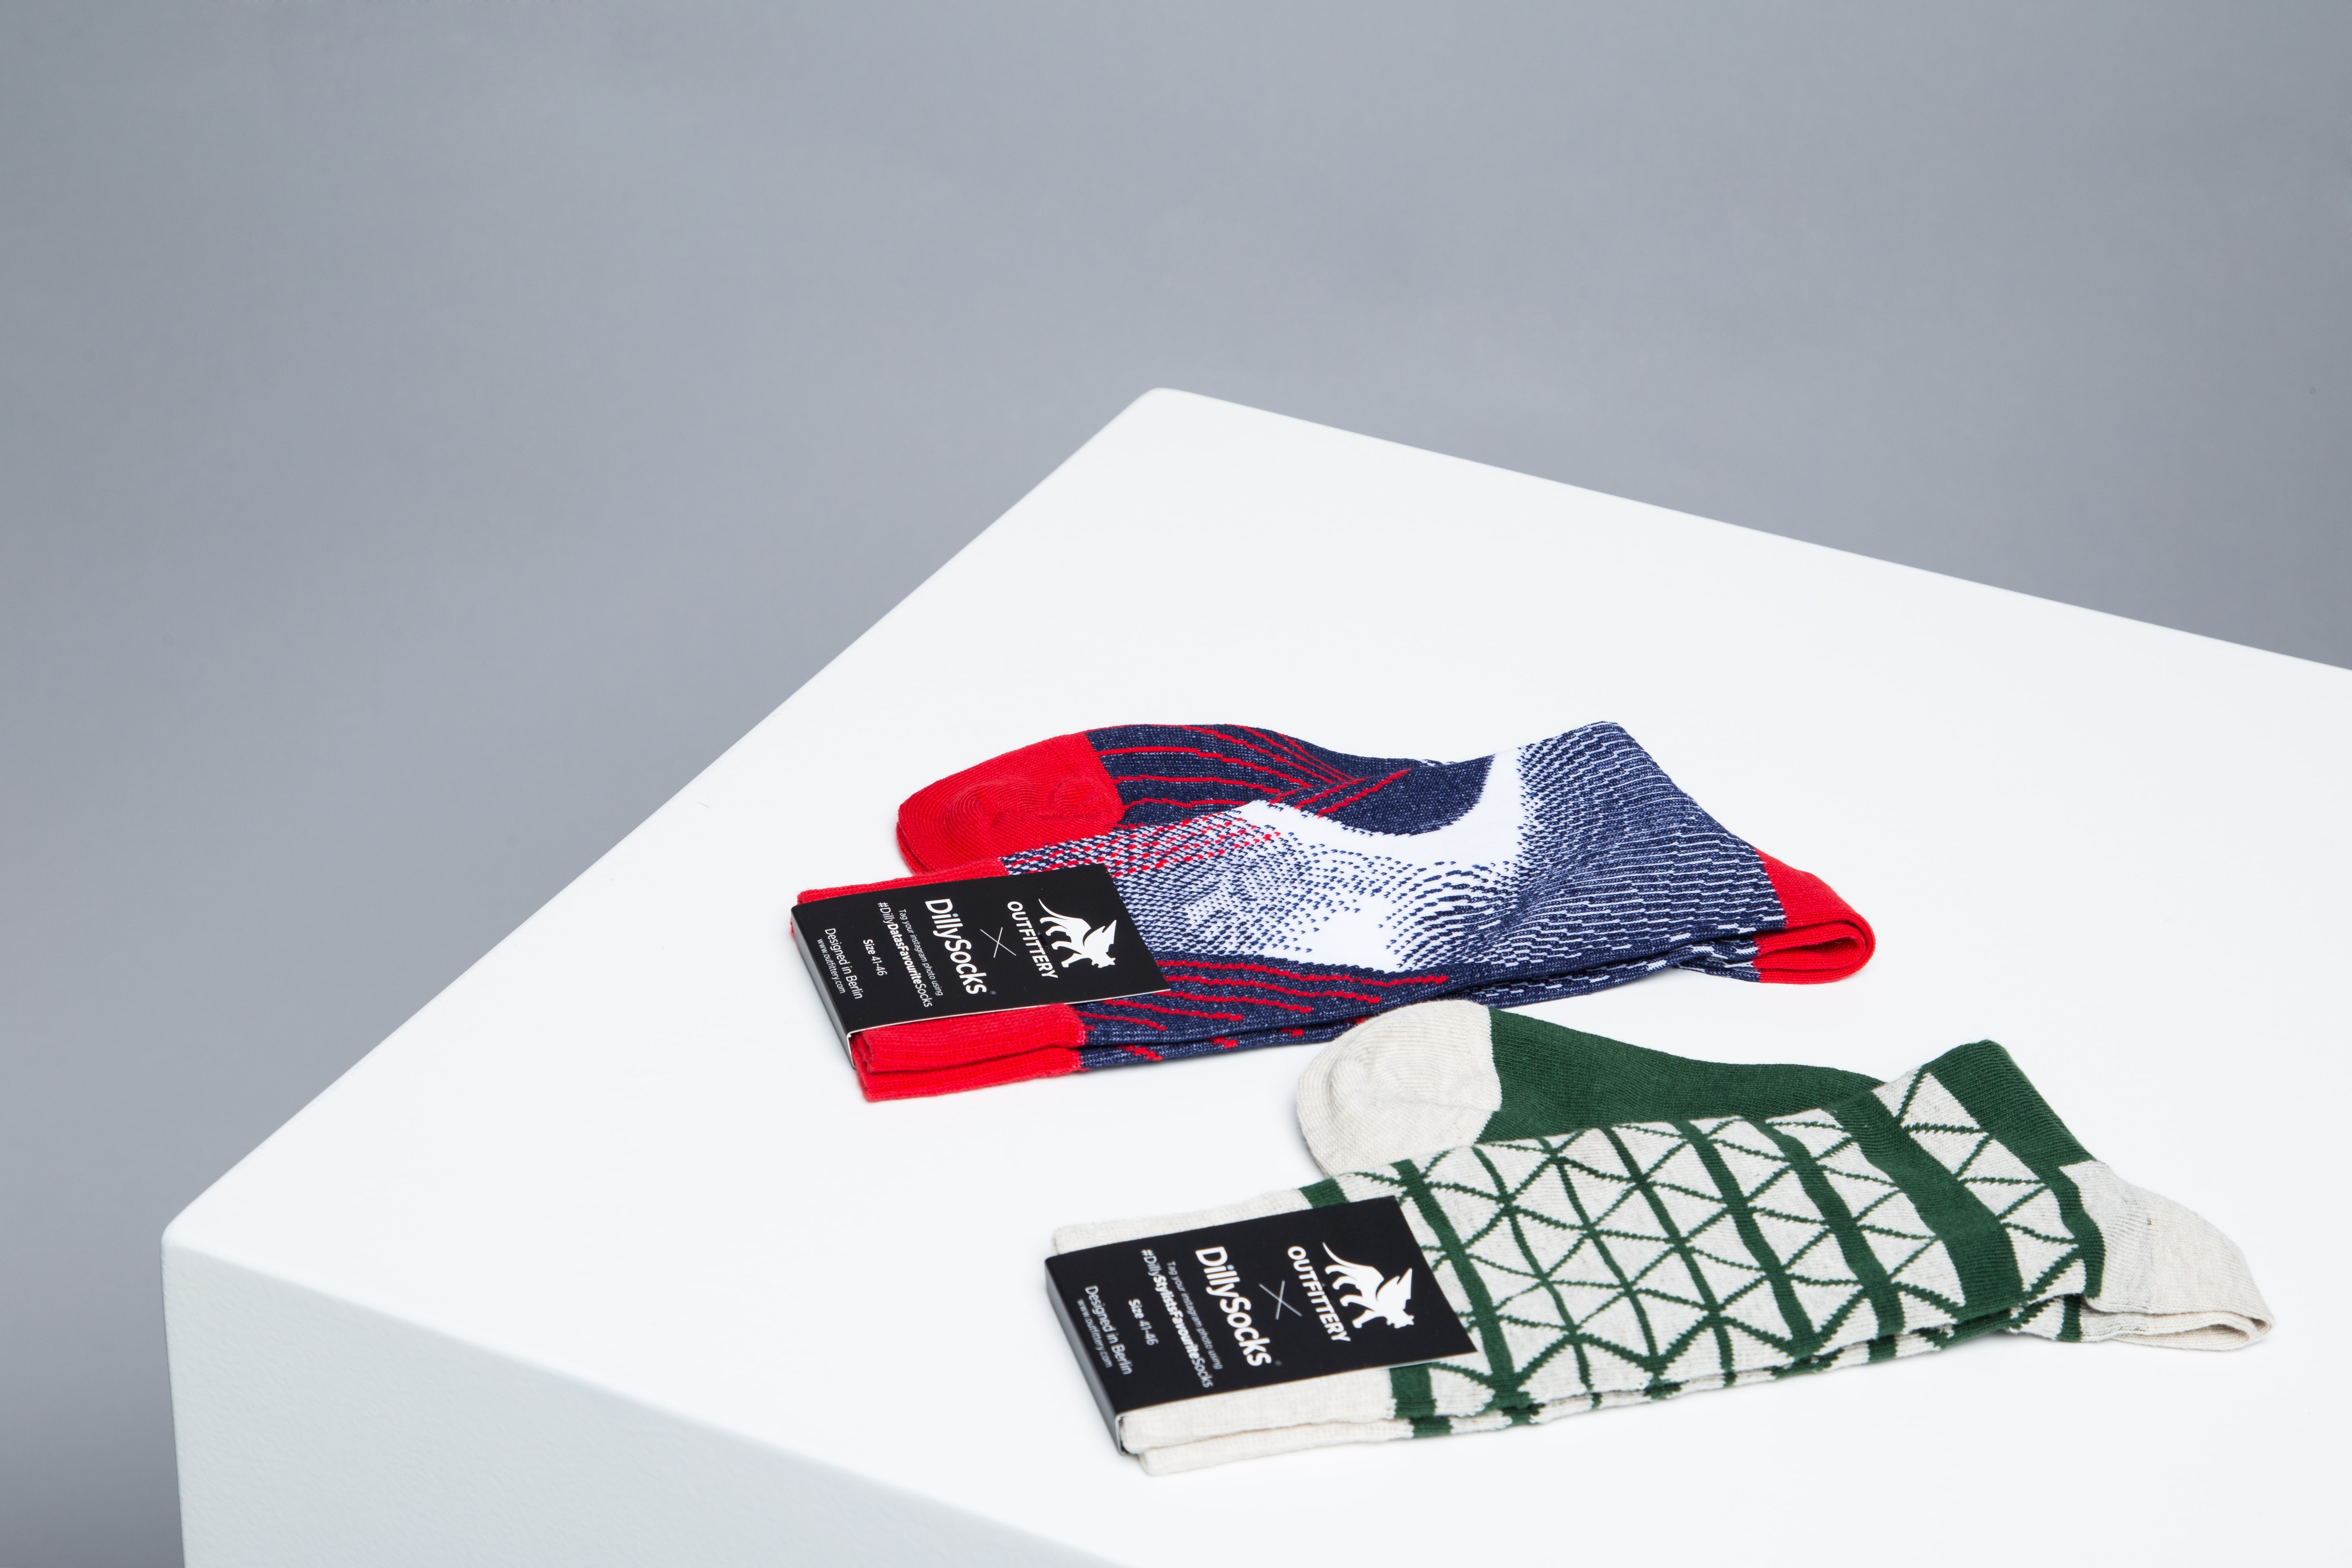 OUTFITTERY launcht besondere Sockenkollektion mit Dilly Socks